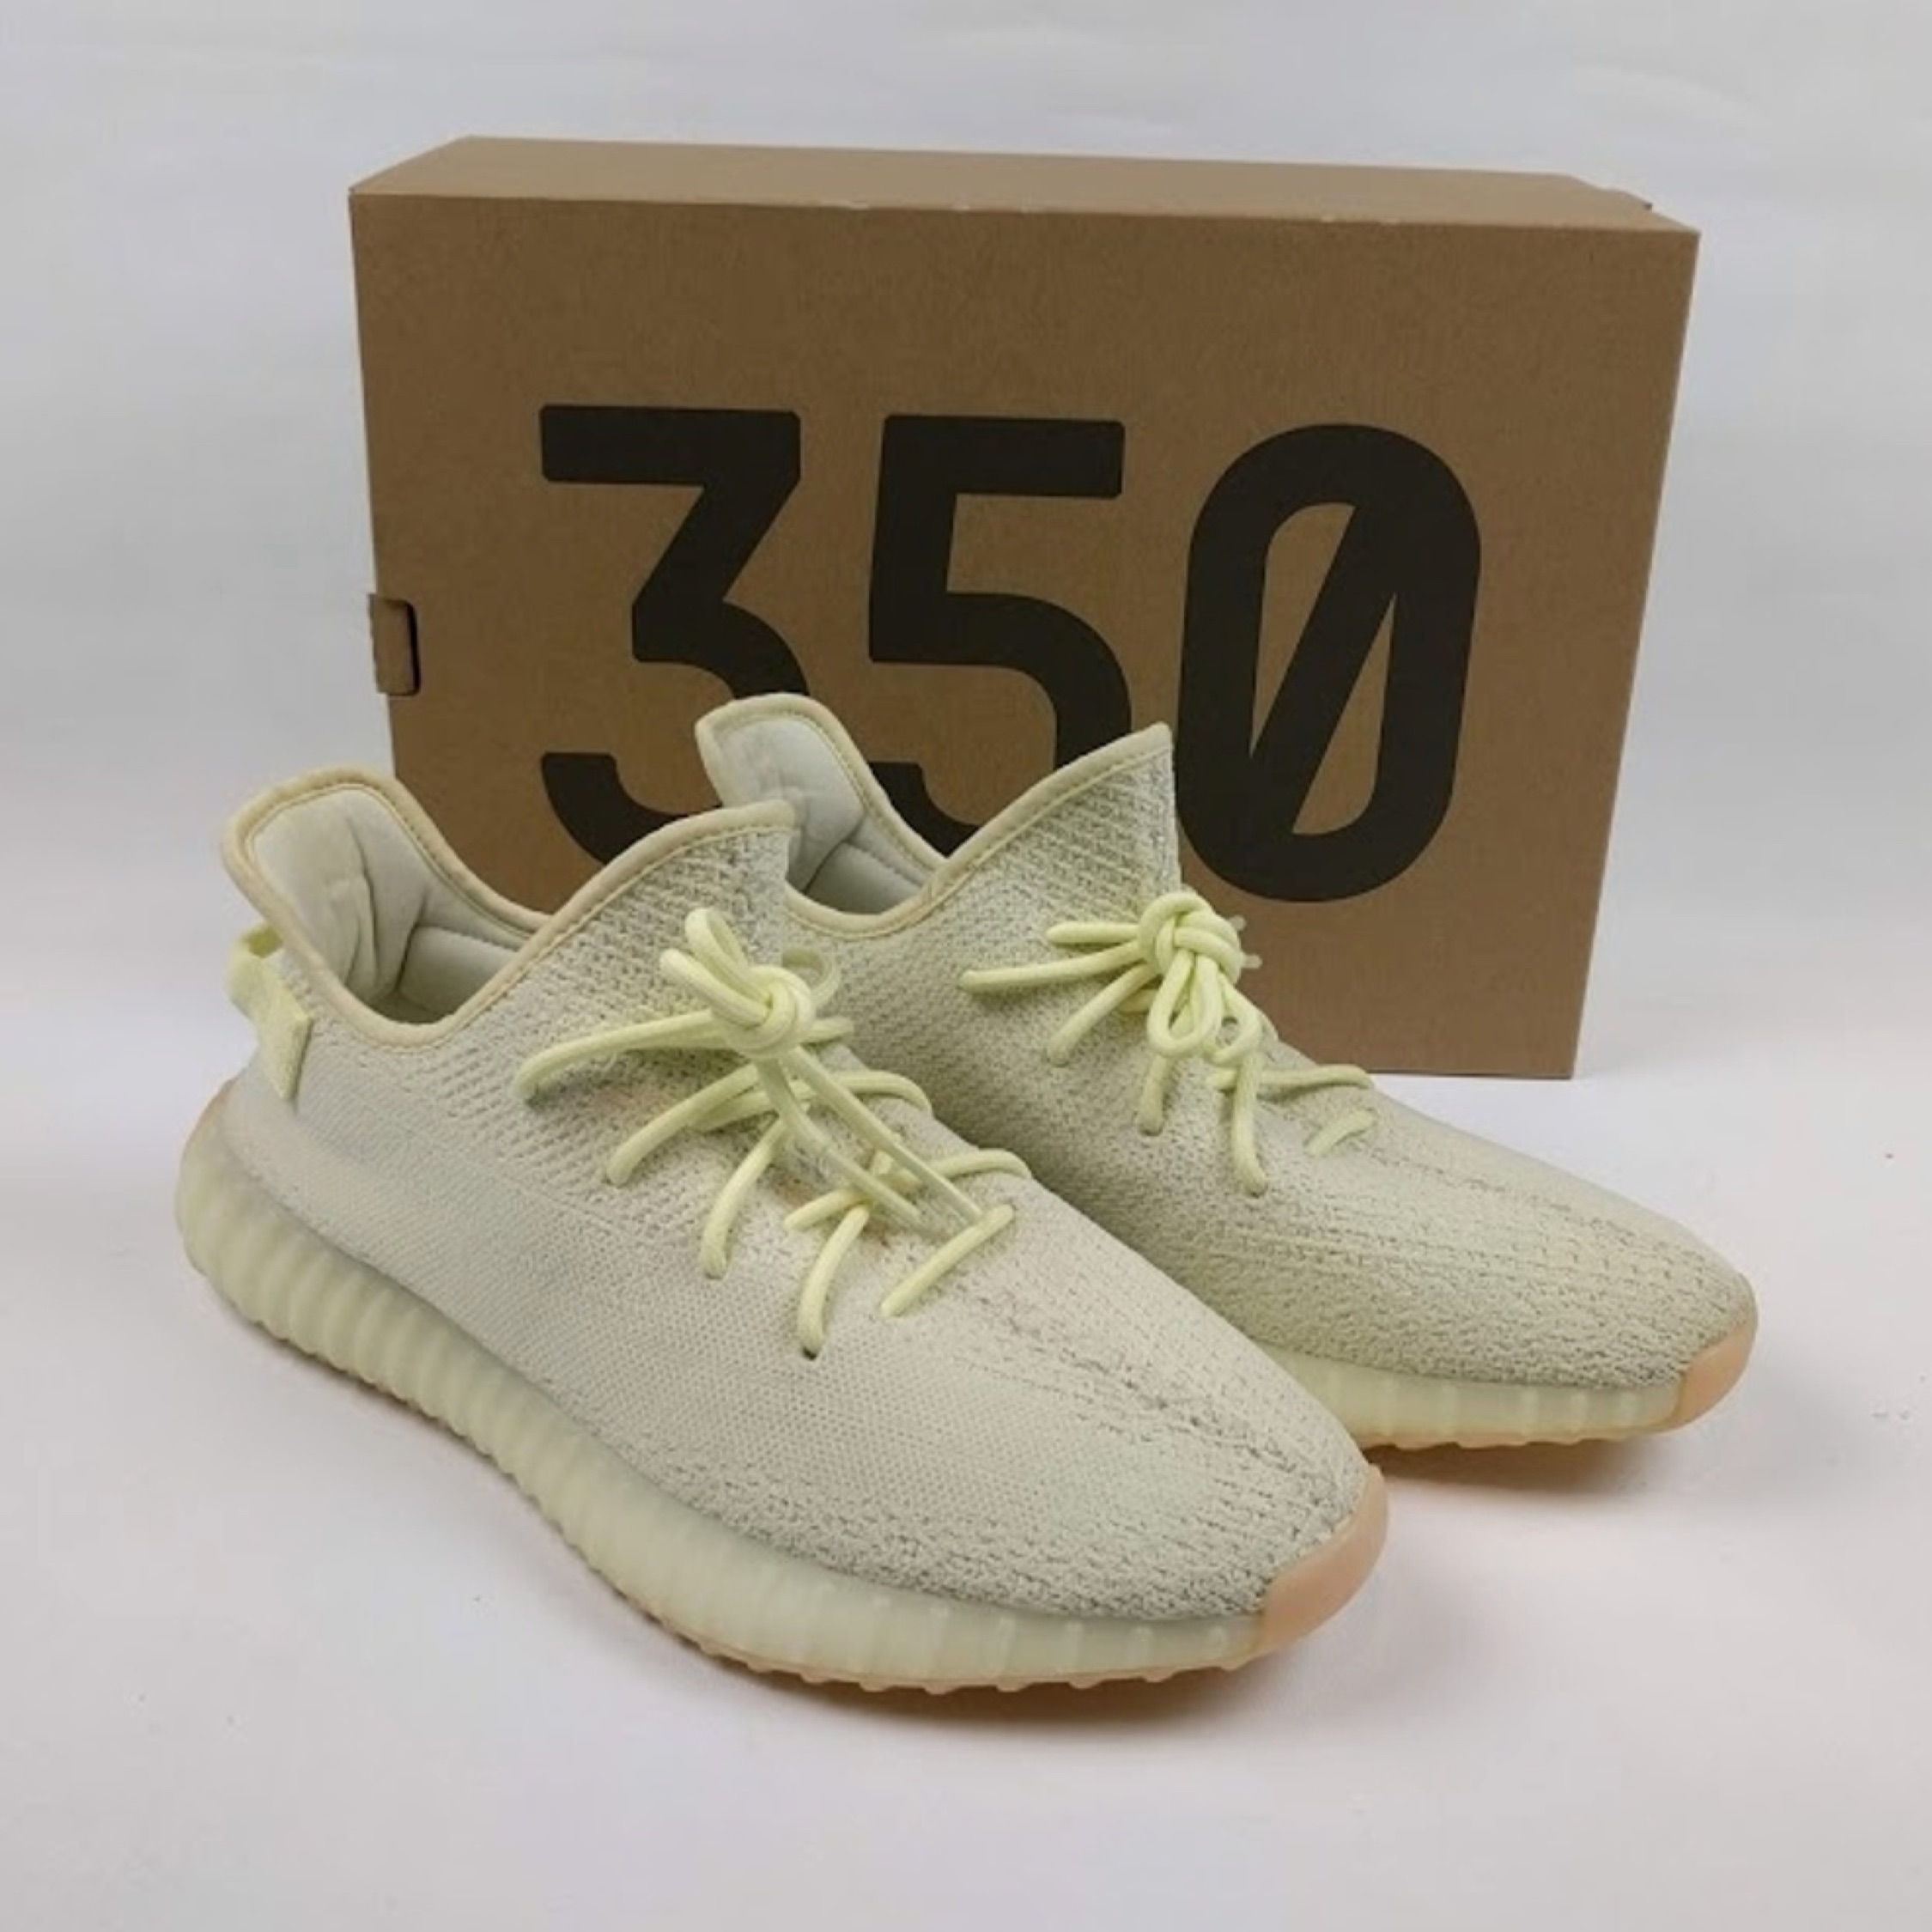 7c8560ec5 Adidas Yeezy 350 Boost V2 Butter Size 11.5